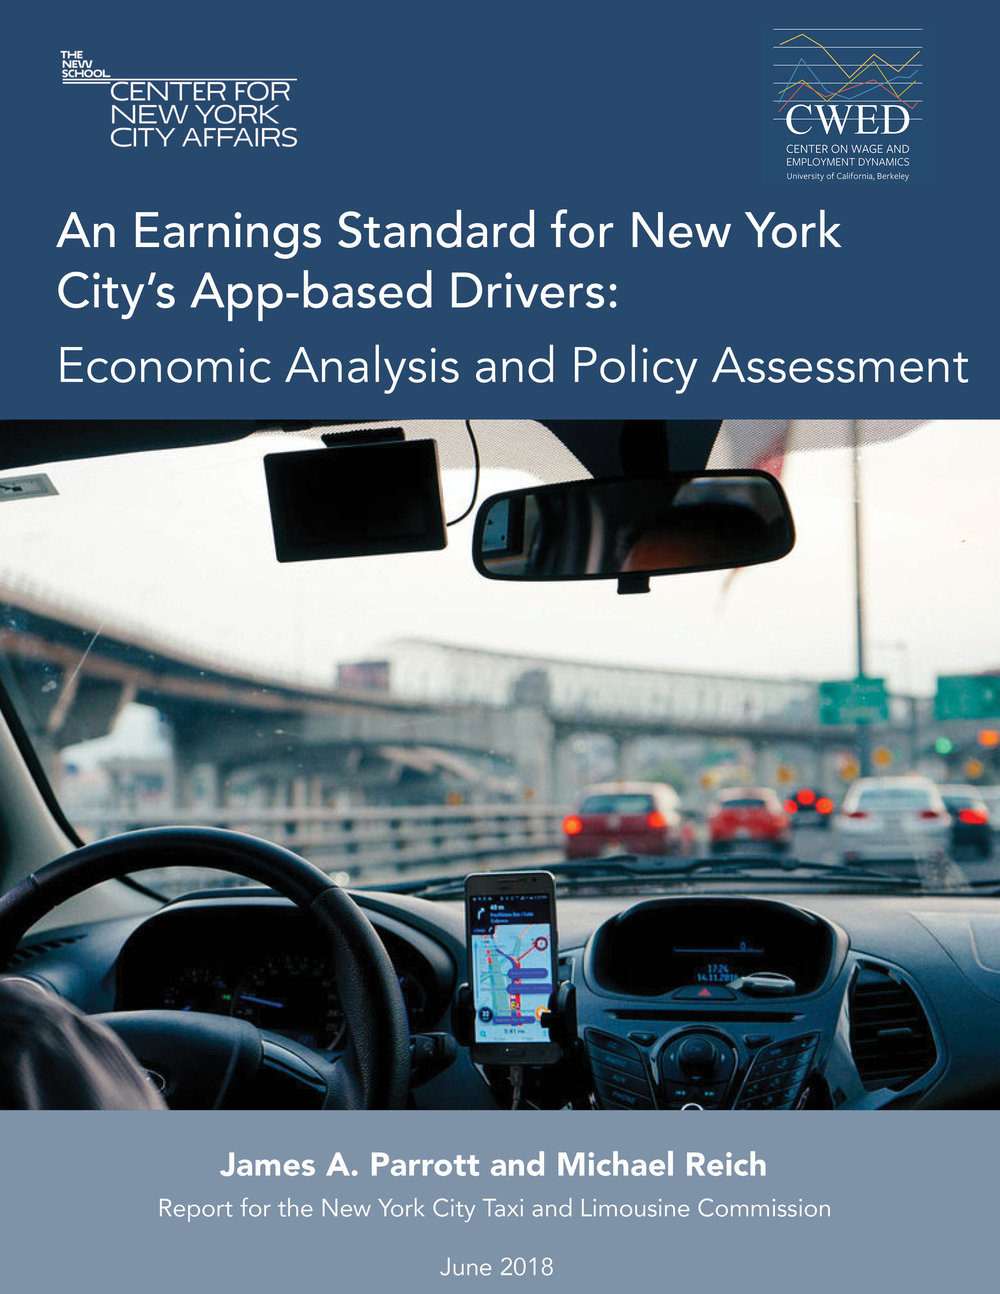 An Earnings Standard for New York City's App-based Drivers: Economic